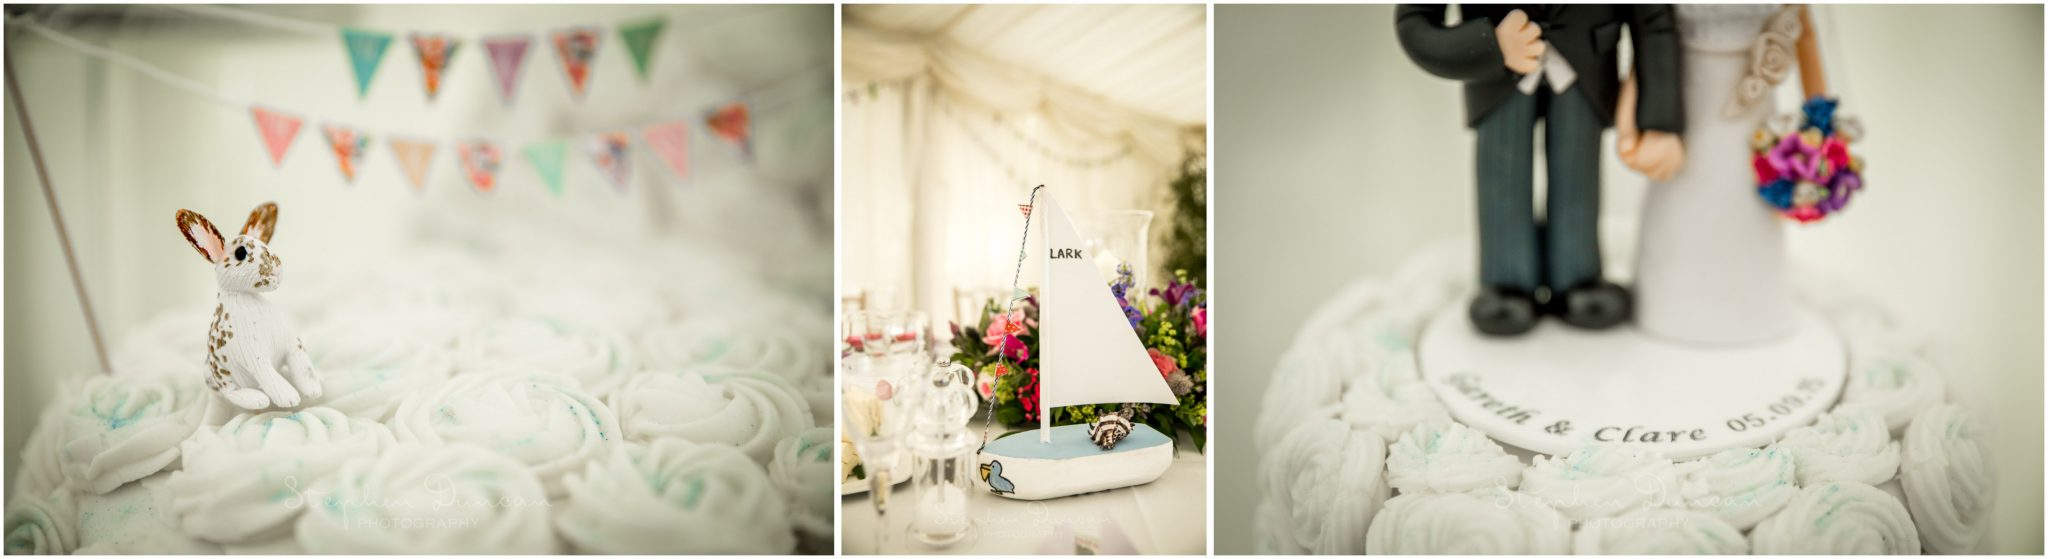 Lymington wedding photography cake details